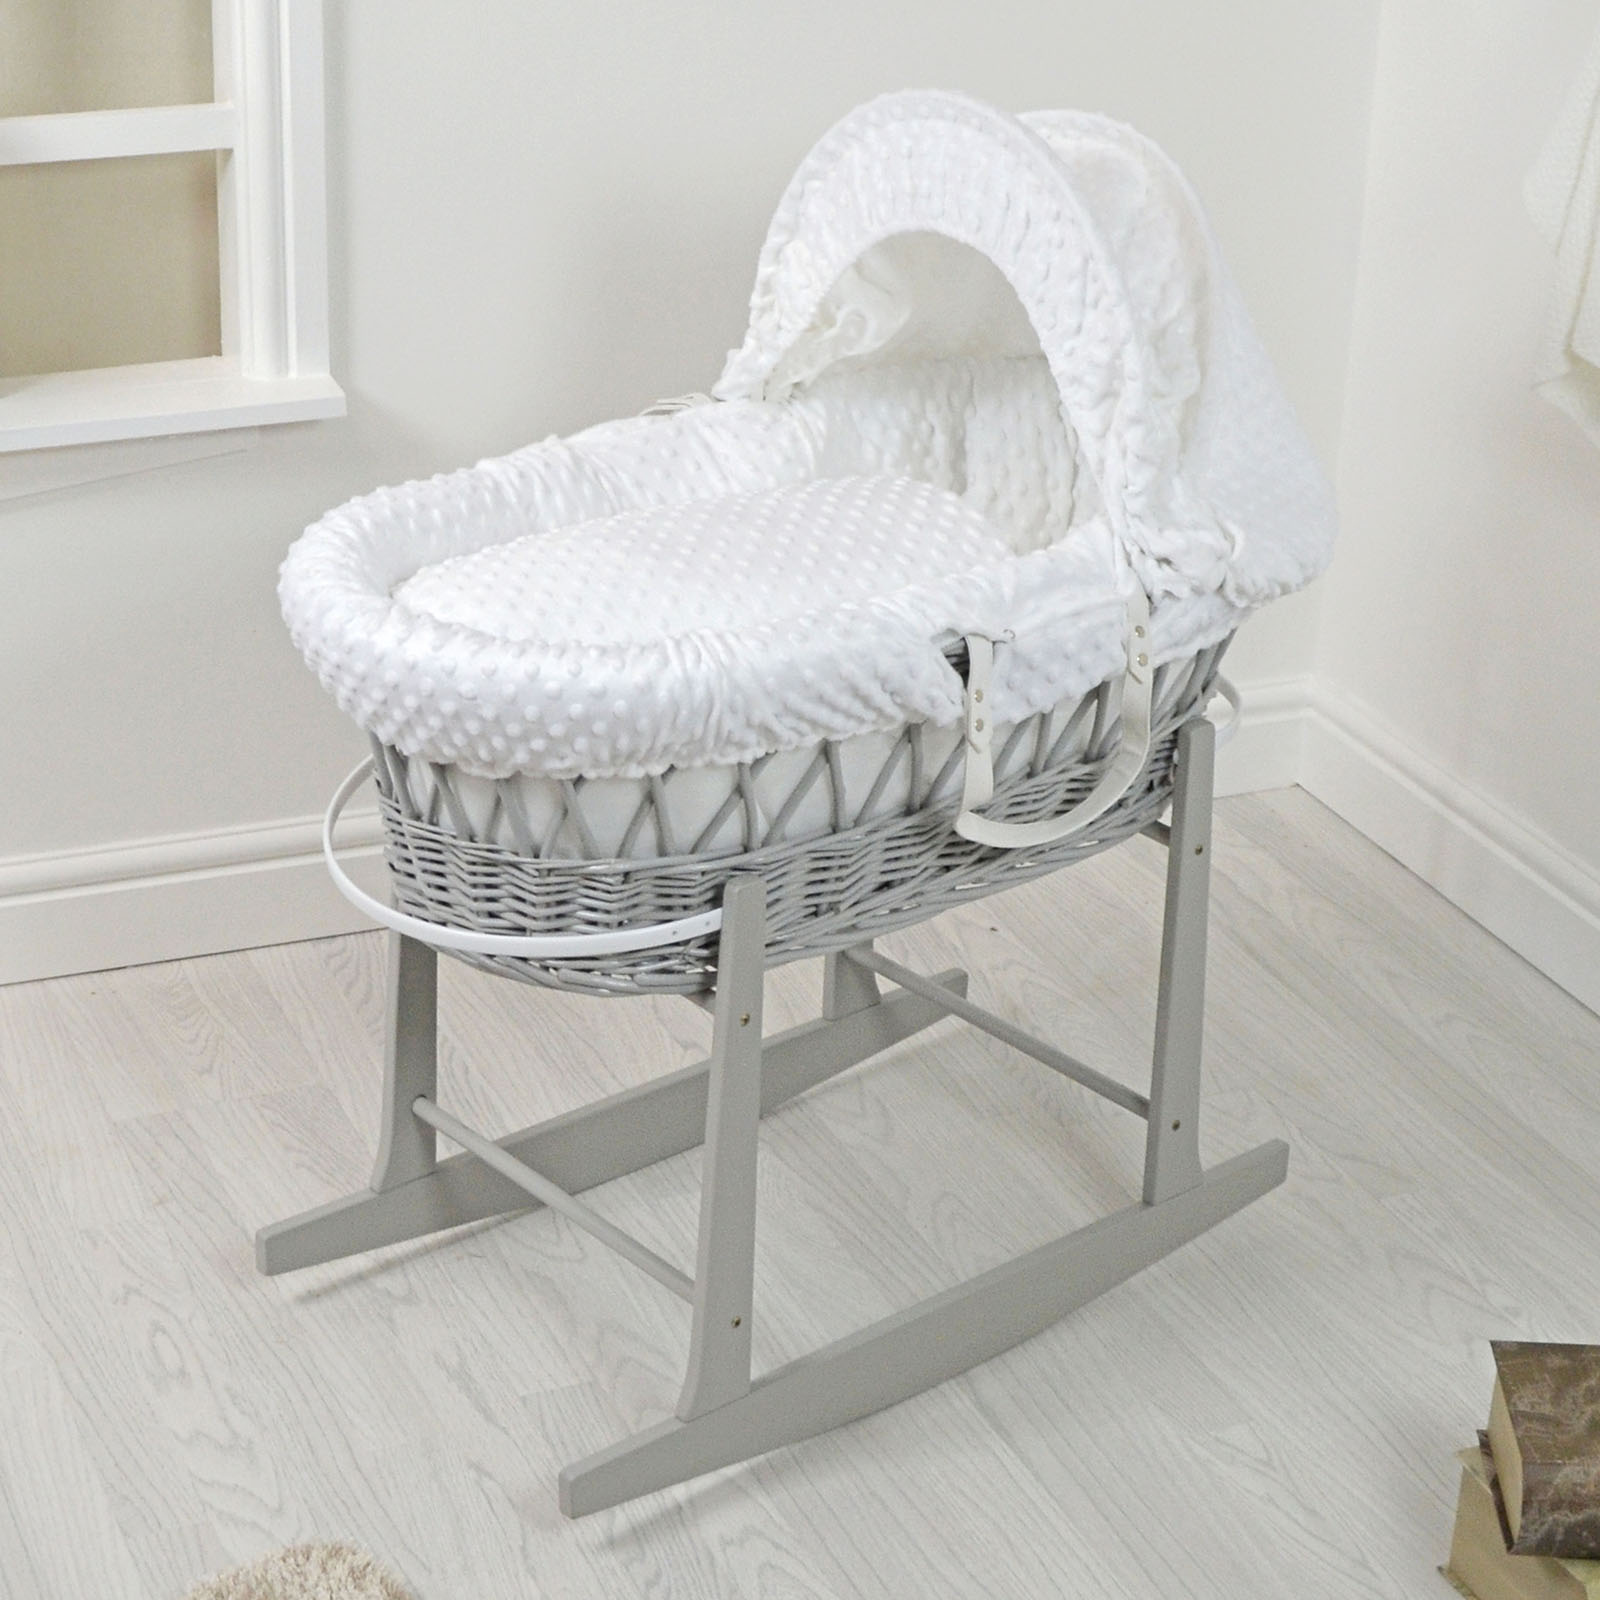 4baby padded grey wicker moses basket rocking stand. Black Bedroom Furniture Sets. Home Design Ideas